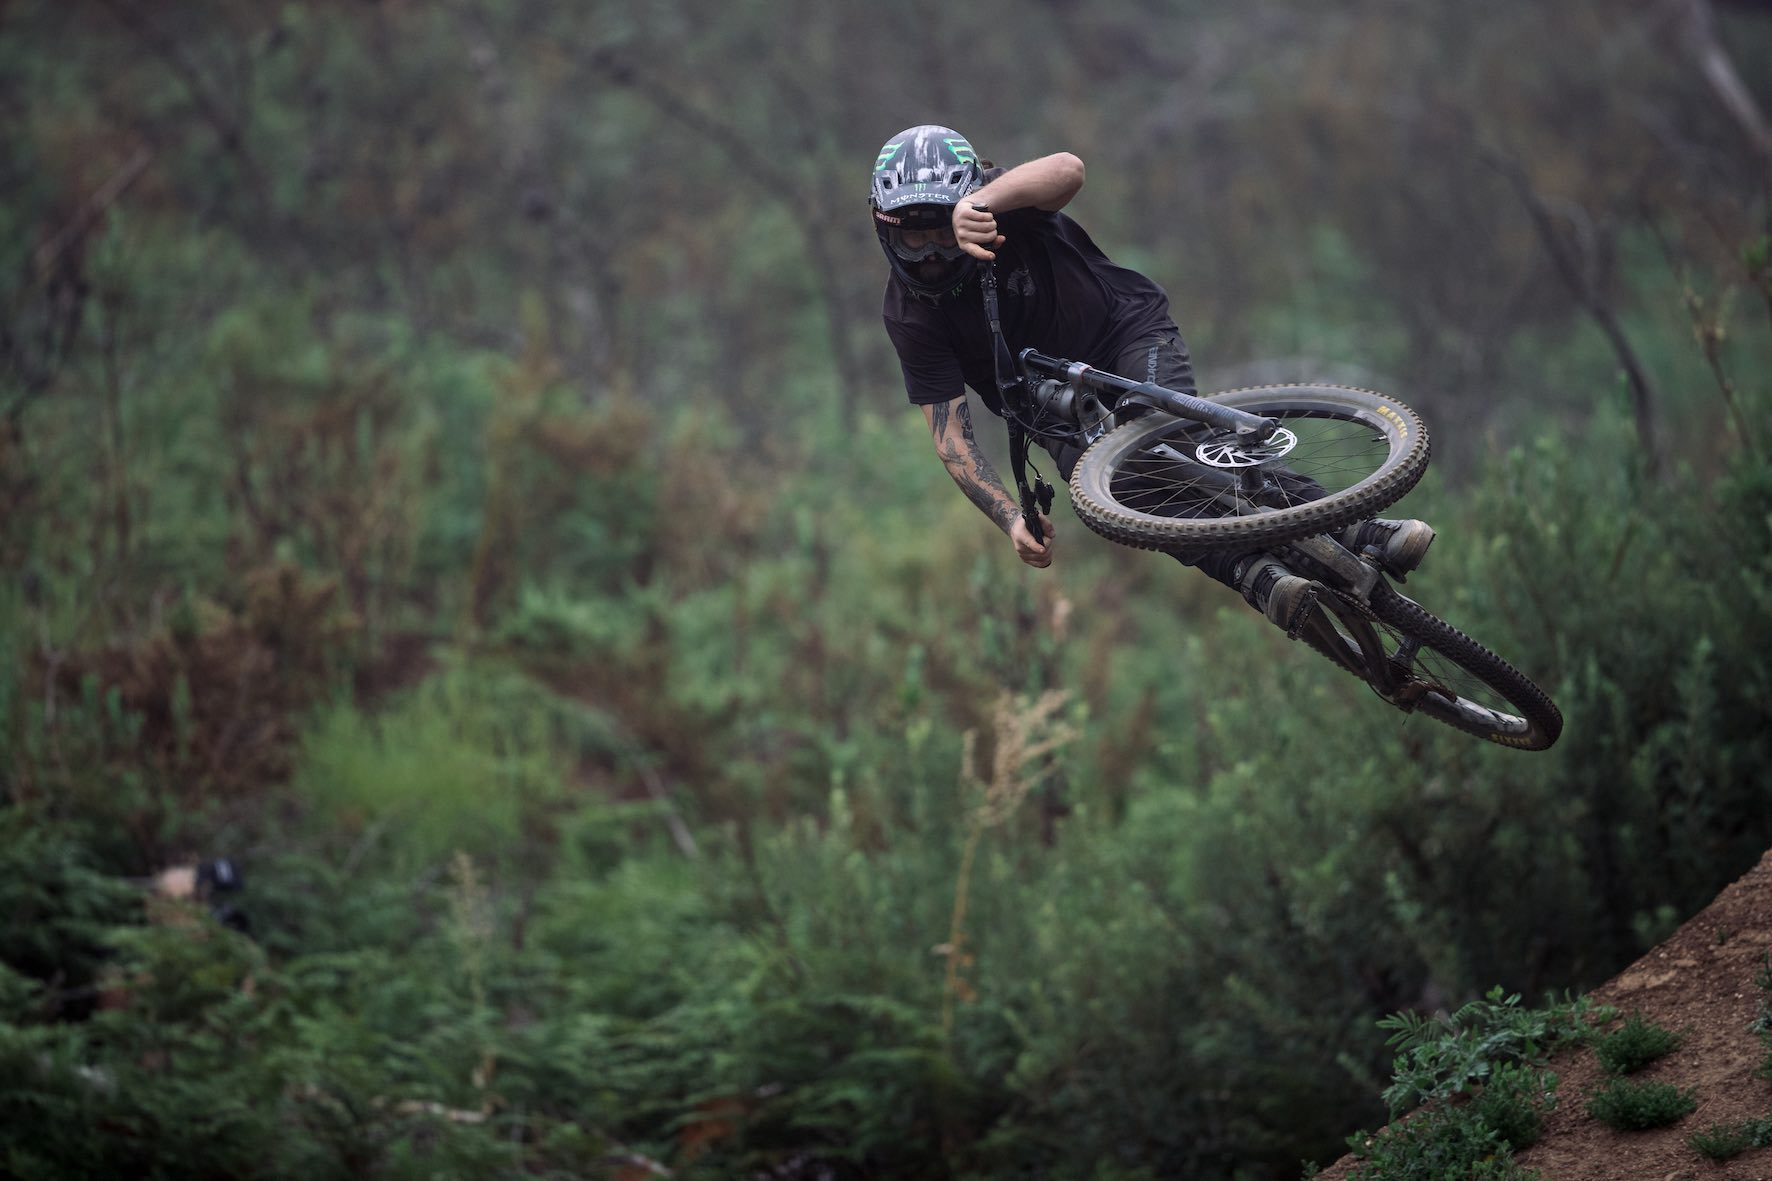 Freeride MTB style for days with Graham Agassiz at DarkFEST